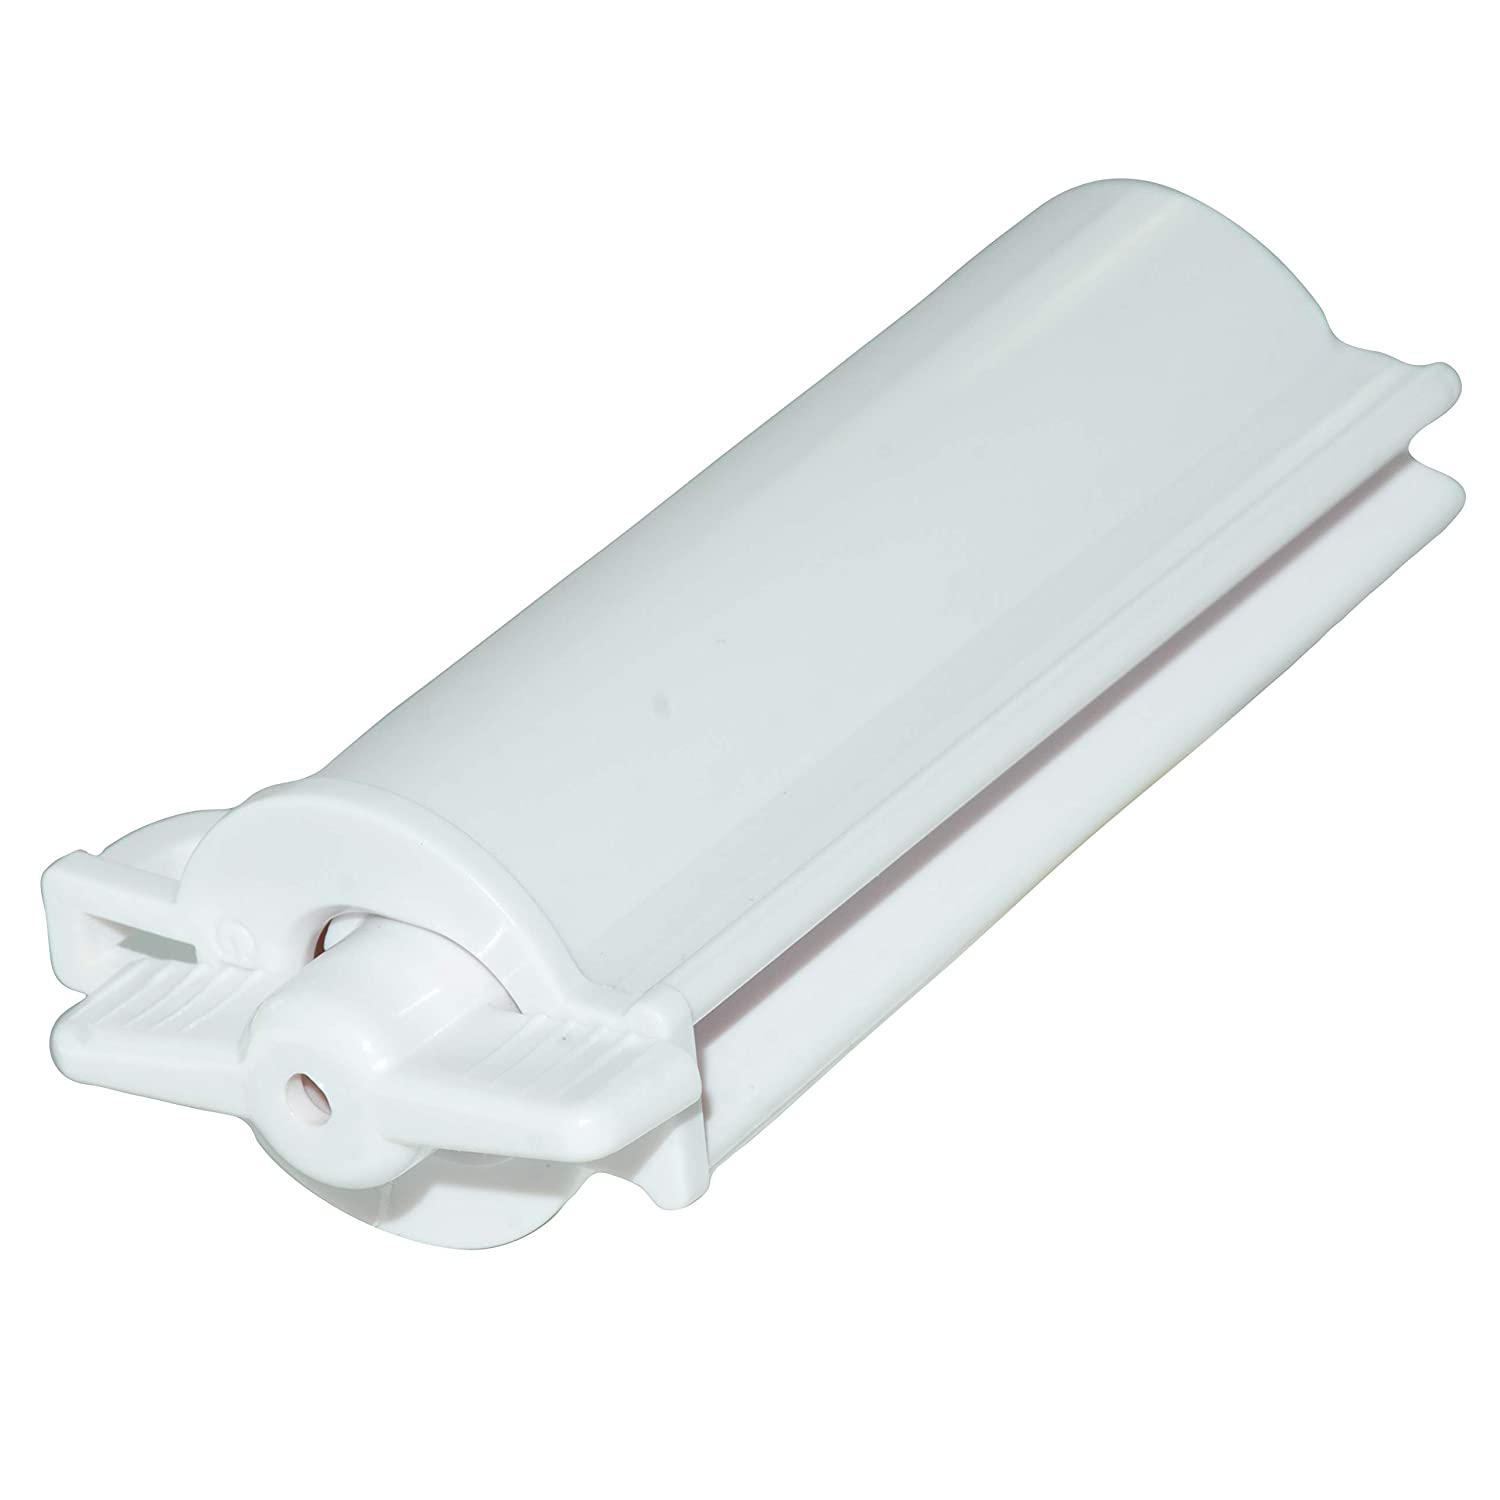 GMS Tube Winder for Toothpaste, Medicated Creams, Acrylic Paints, Sunscreen, Make Up and More!